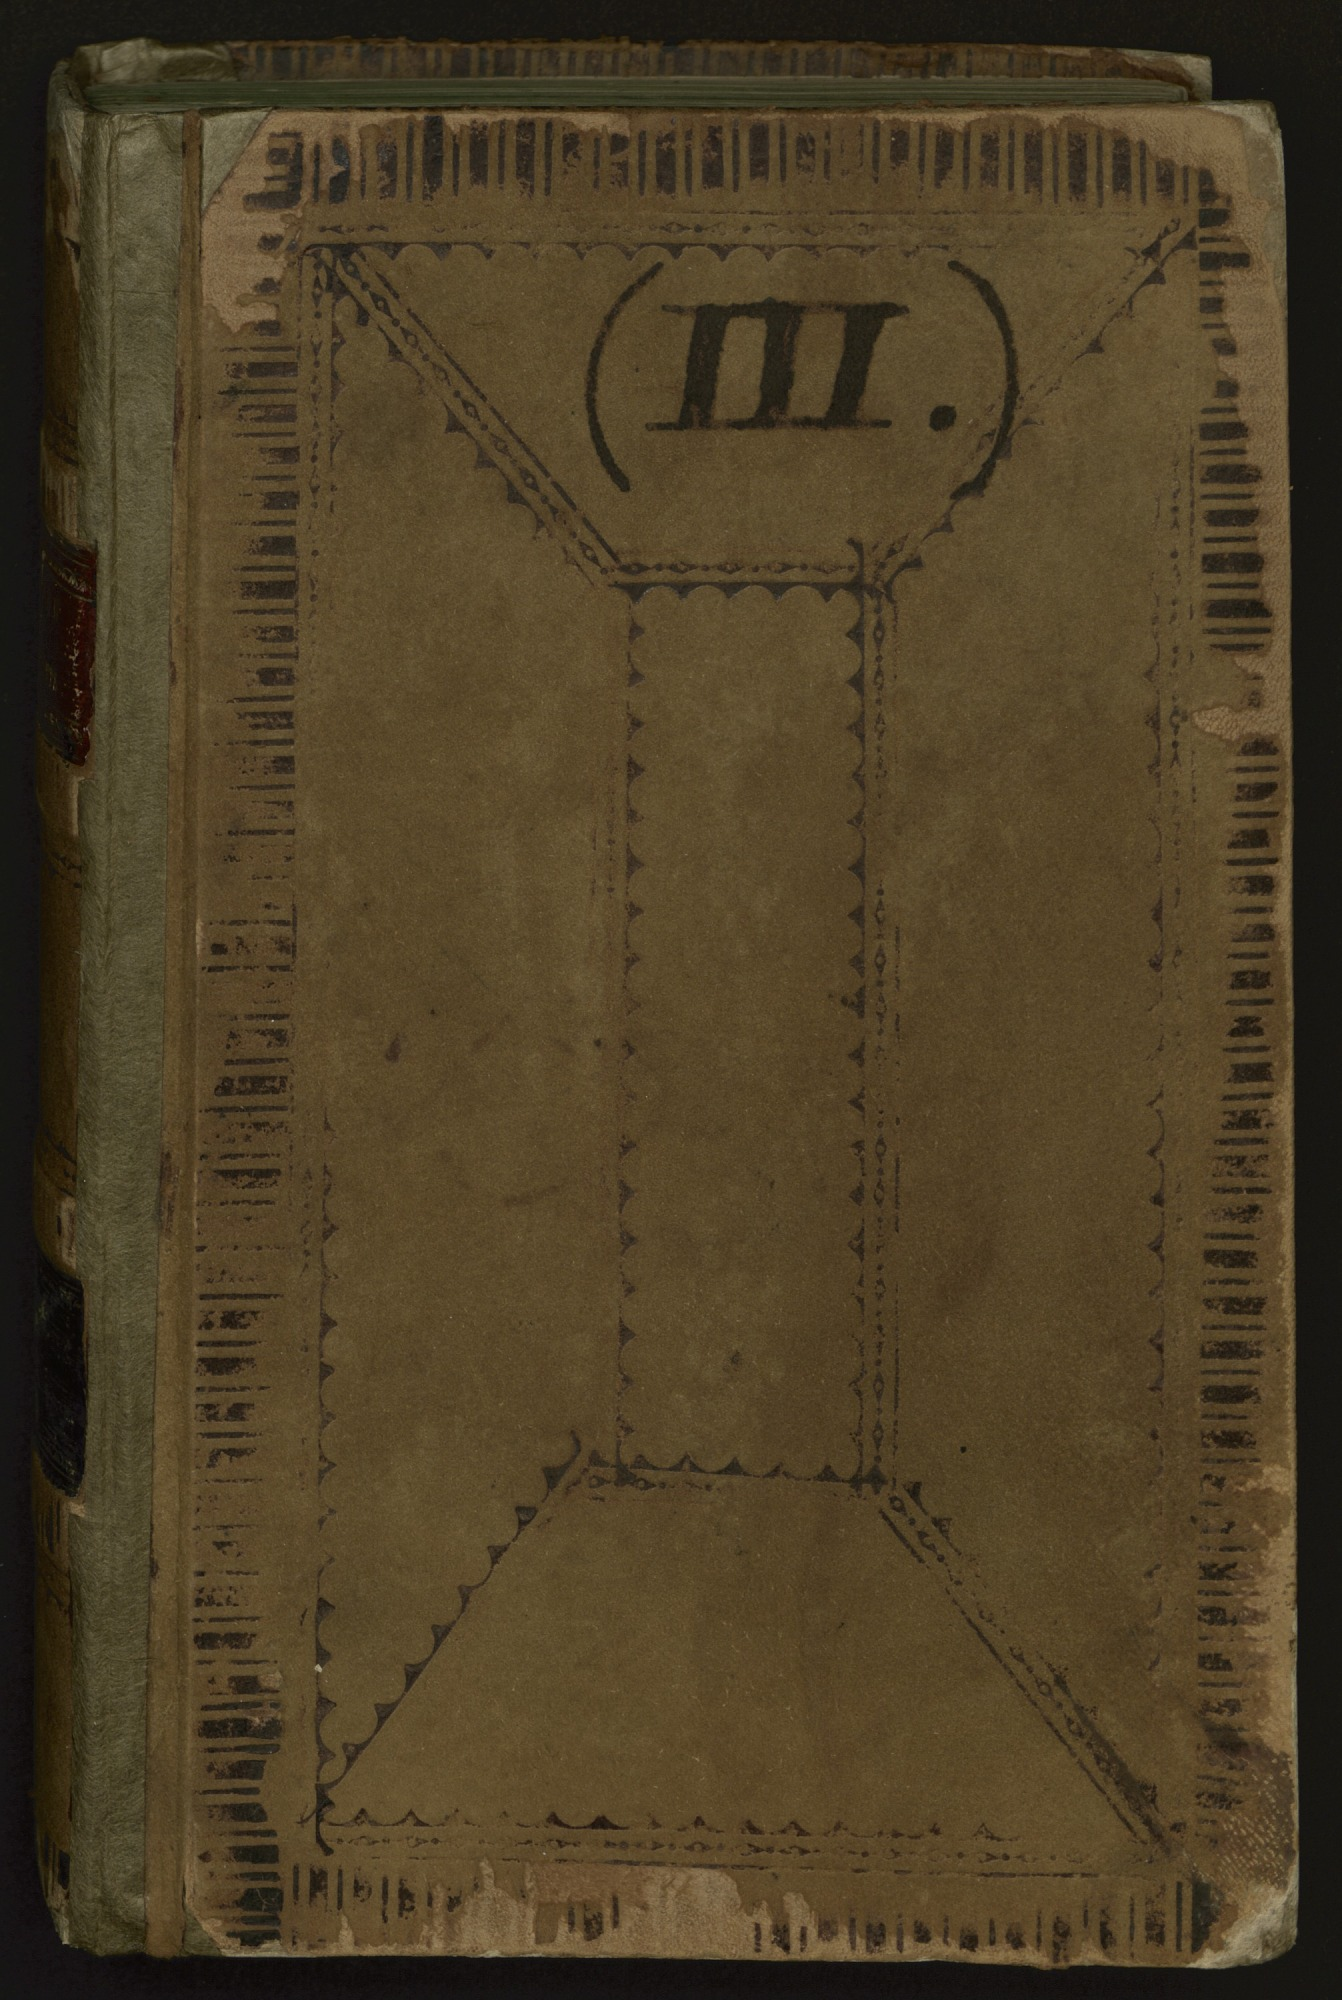 Joseph Henry's Record of Experiments Book 3